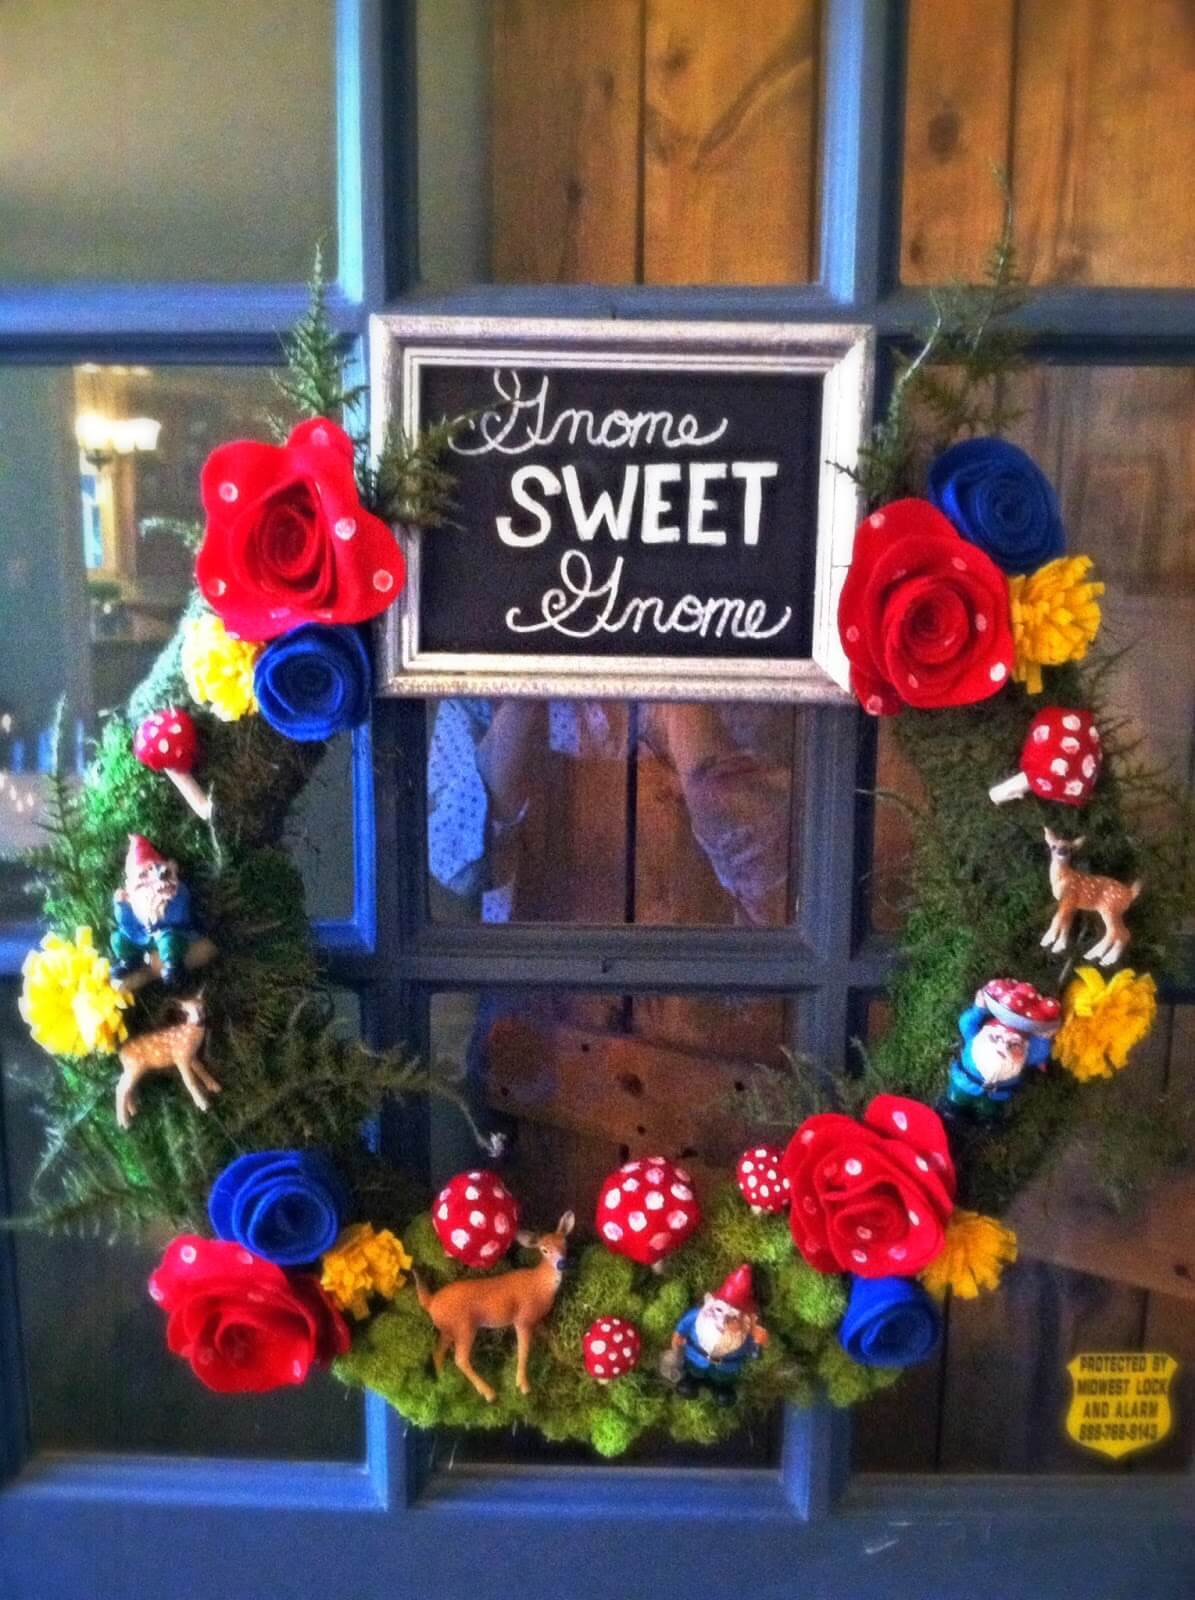 Gnome-Inspired Wreath with Chalkboard Message